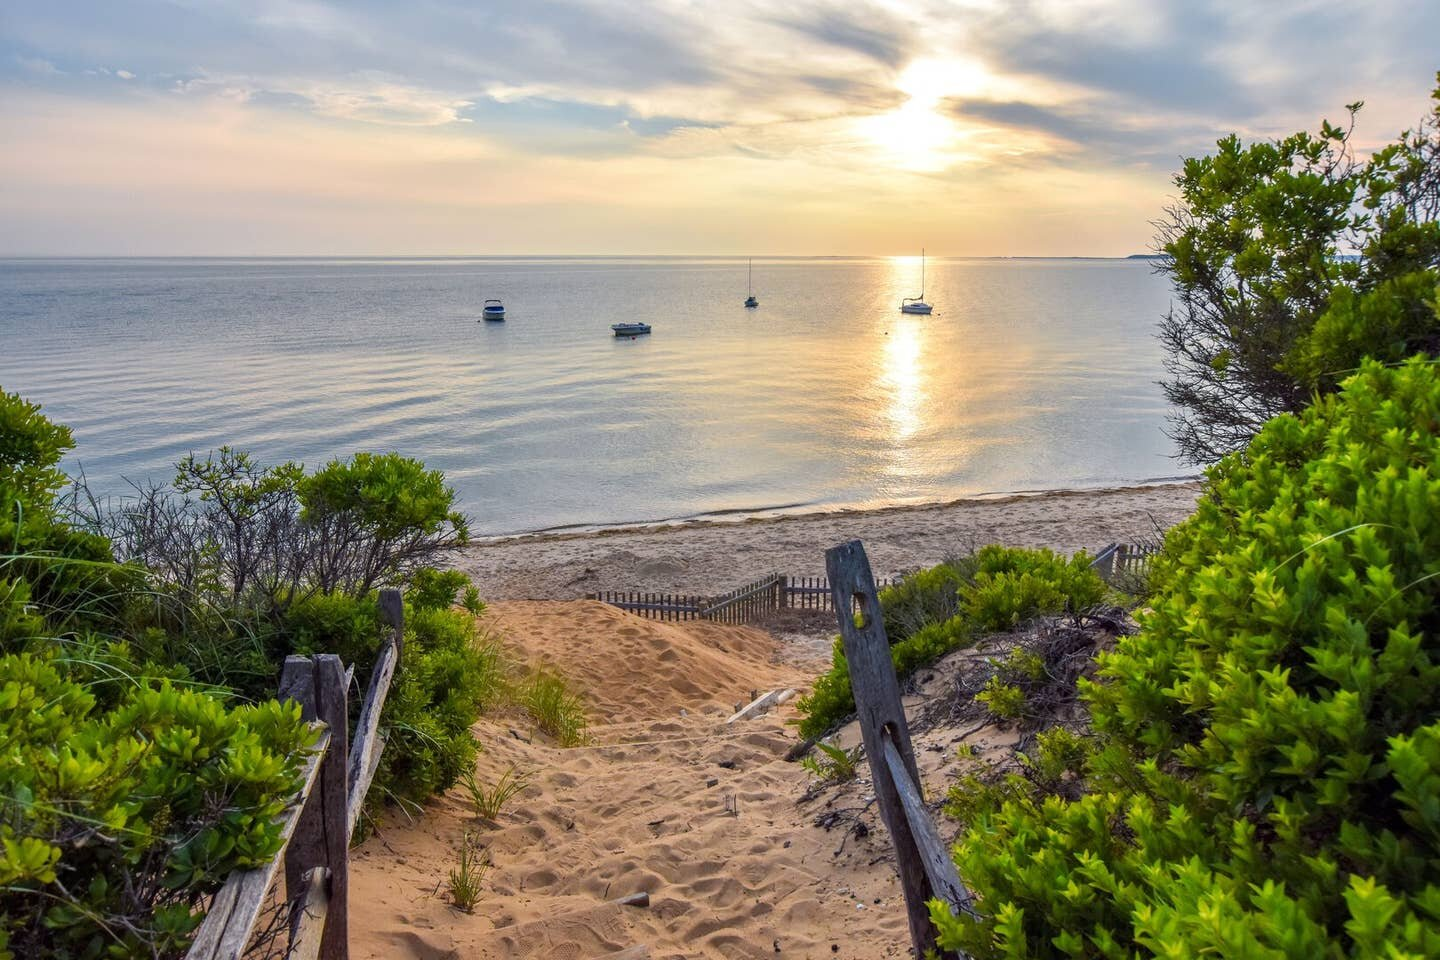 Private beach? Yes Please! - We won't have to travel far to enjoy the sand and sea, as we will have access to two deeded, private beaches, as well as easy access to South Sunken Meadow Beach.